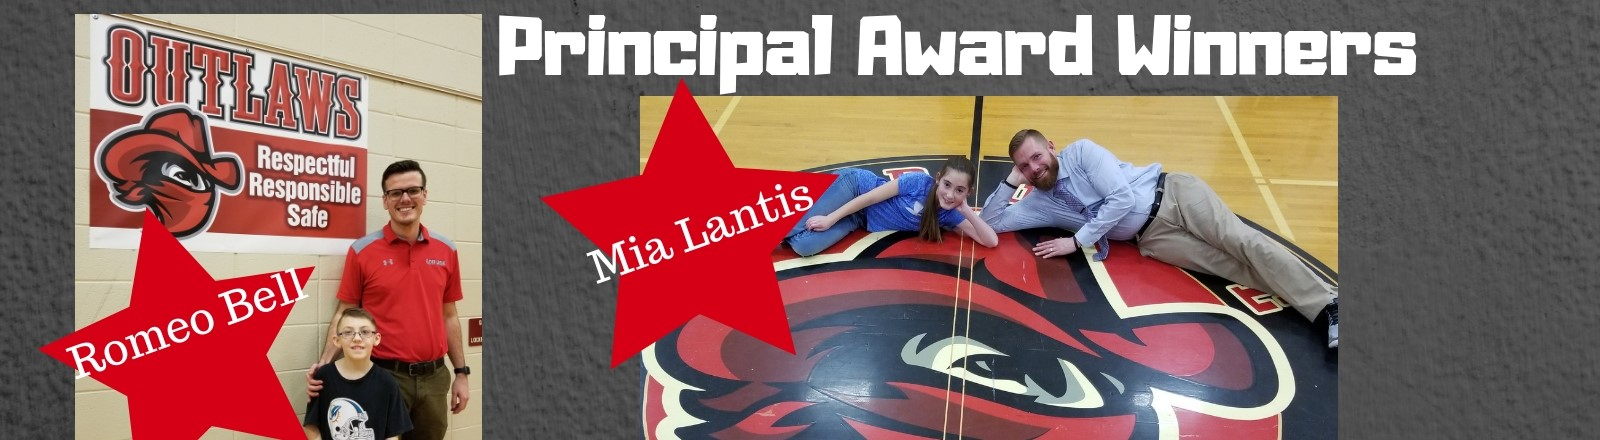 Principal Award Winners and Principals - Mia Lantis and Romeo Bell